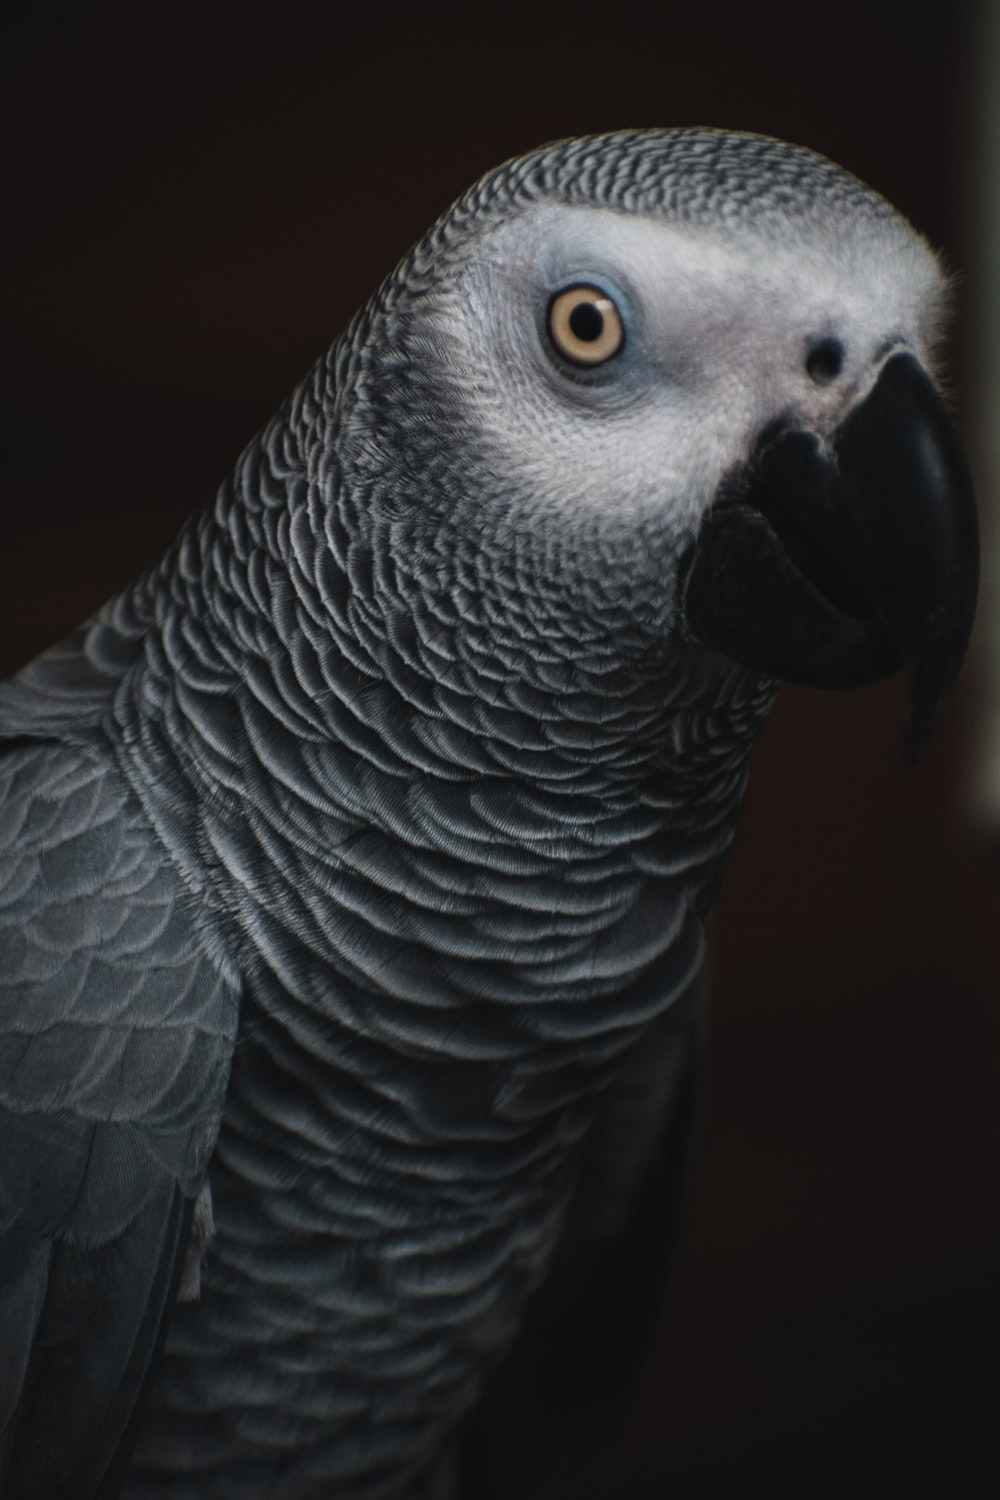 gray and black bird in close up photography